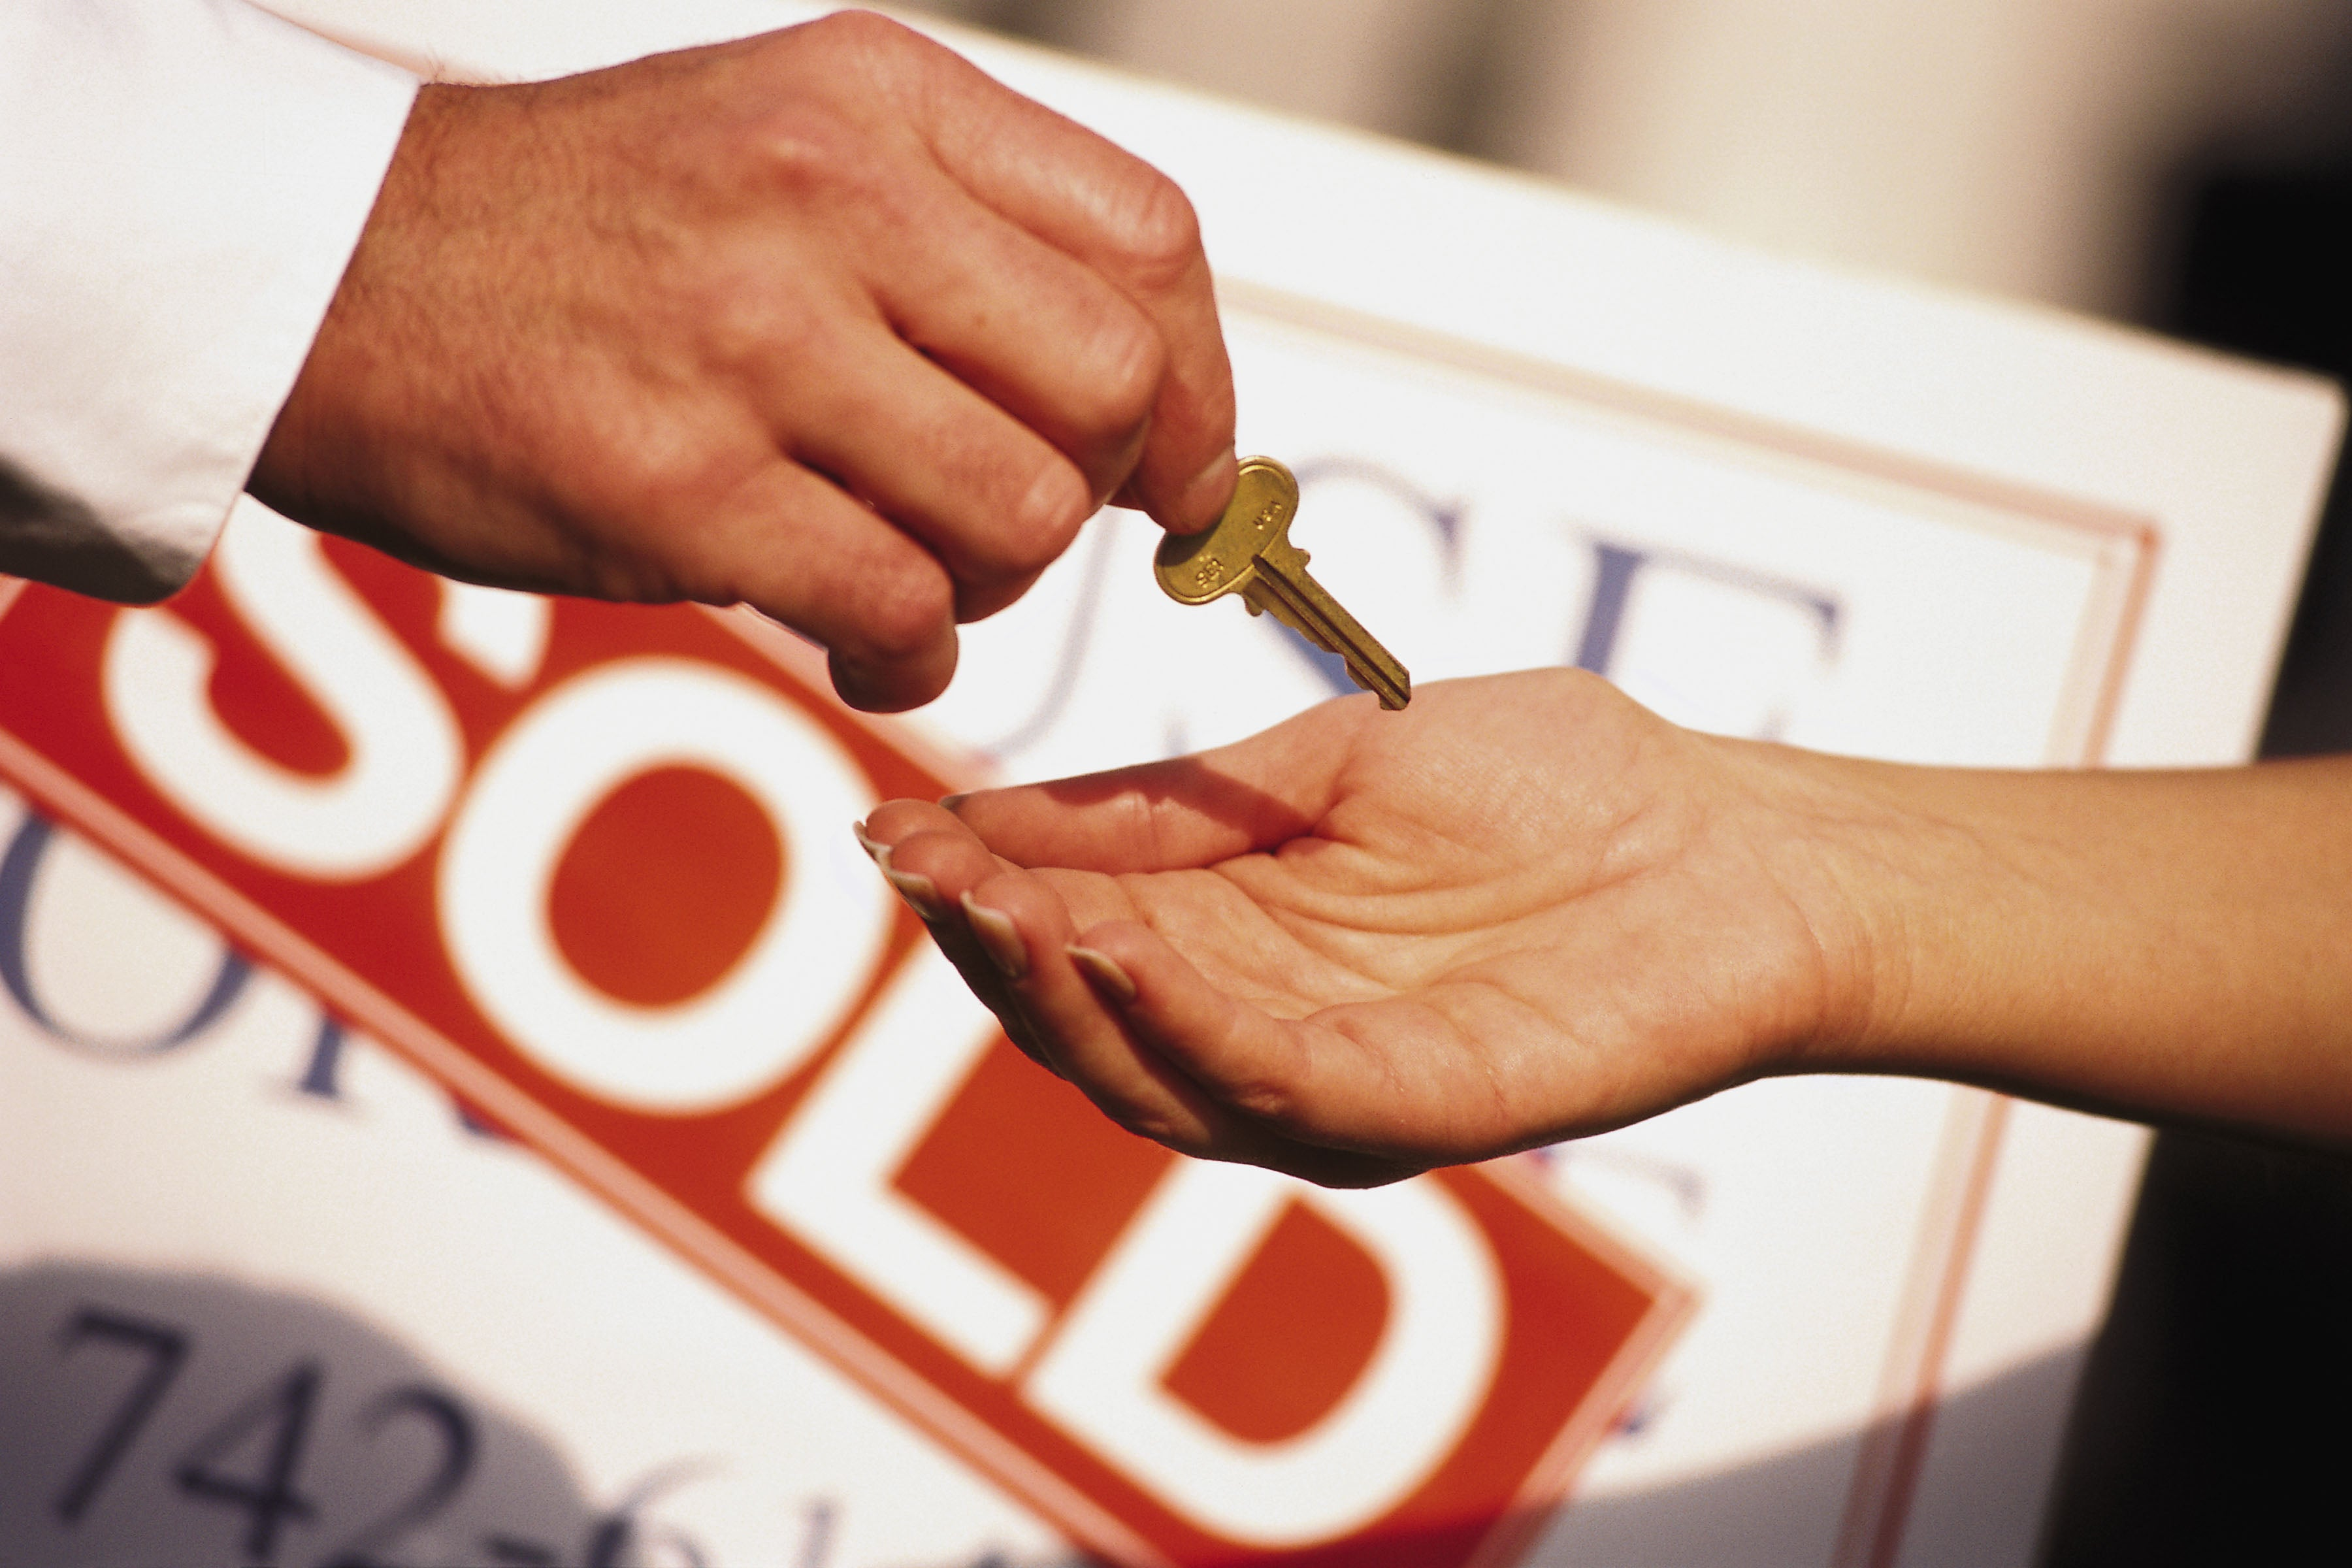 One person handing keys to another with a real estate Sold sign in the background.